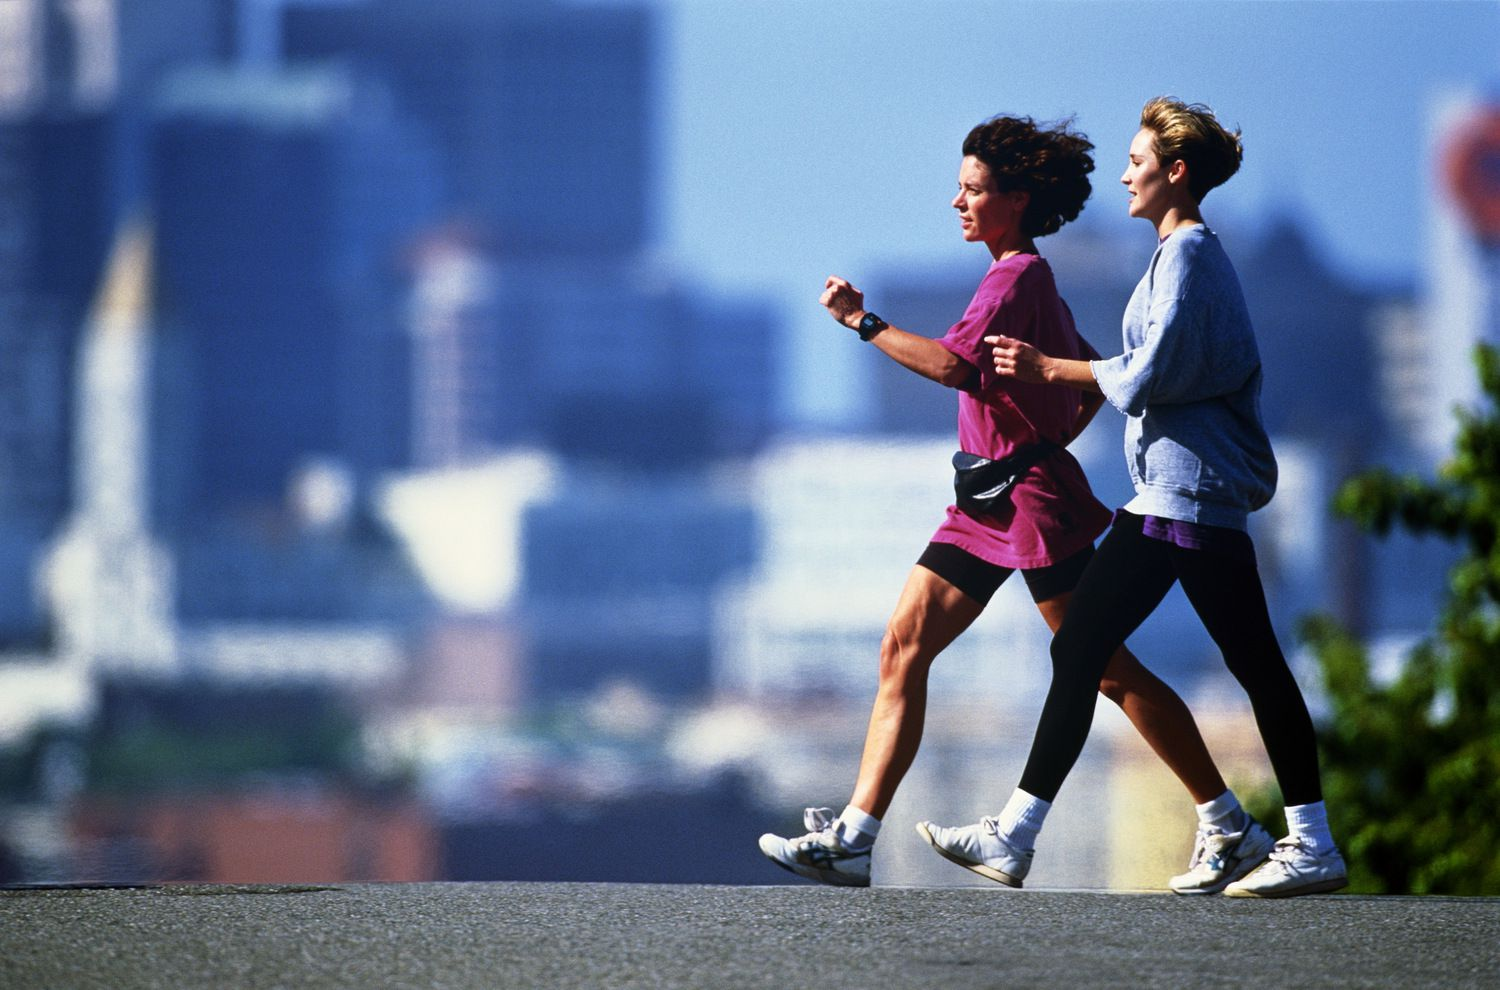 How Fast Is A Brisk Walking Pace